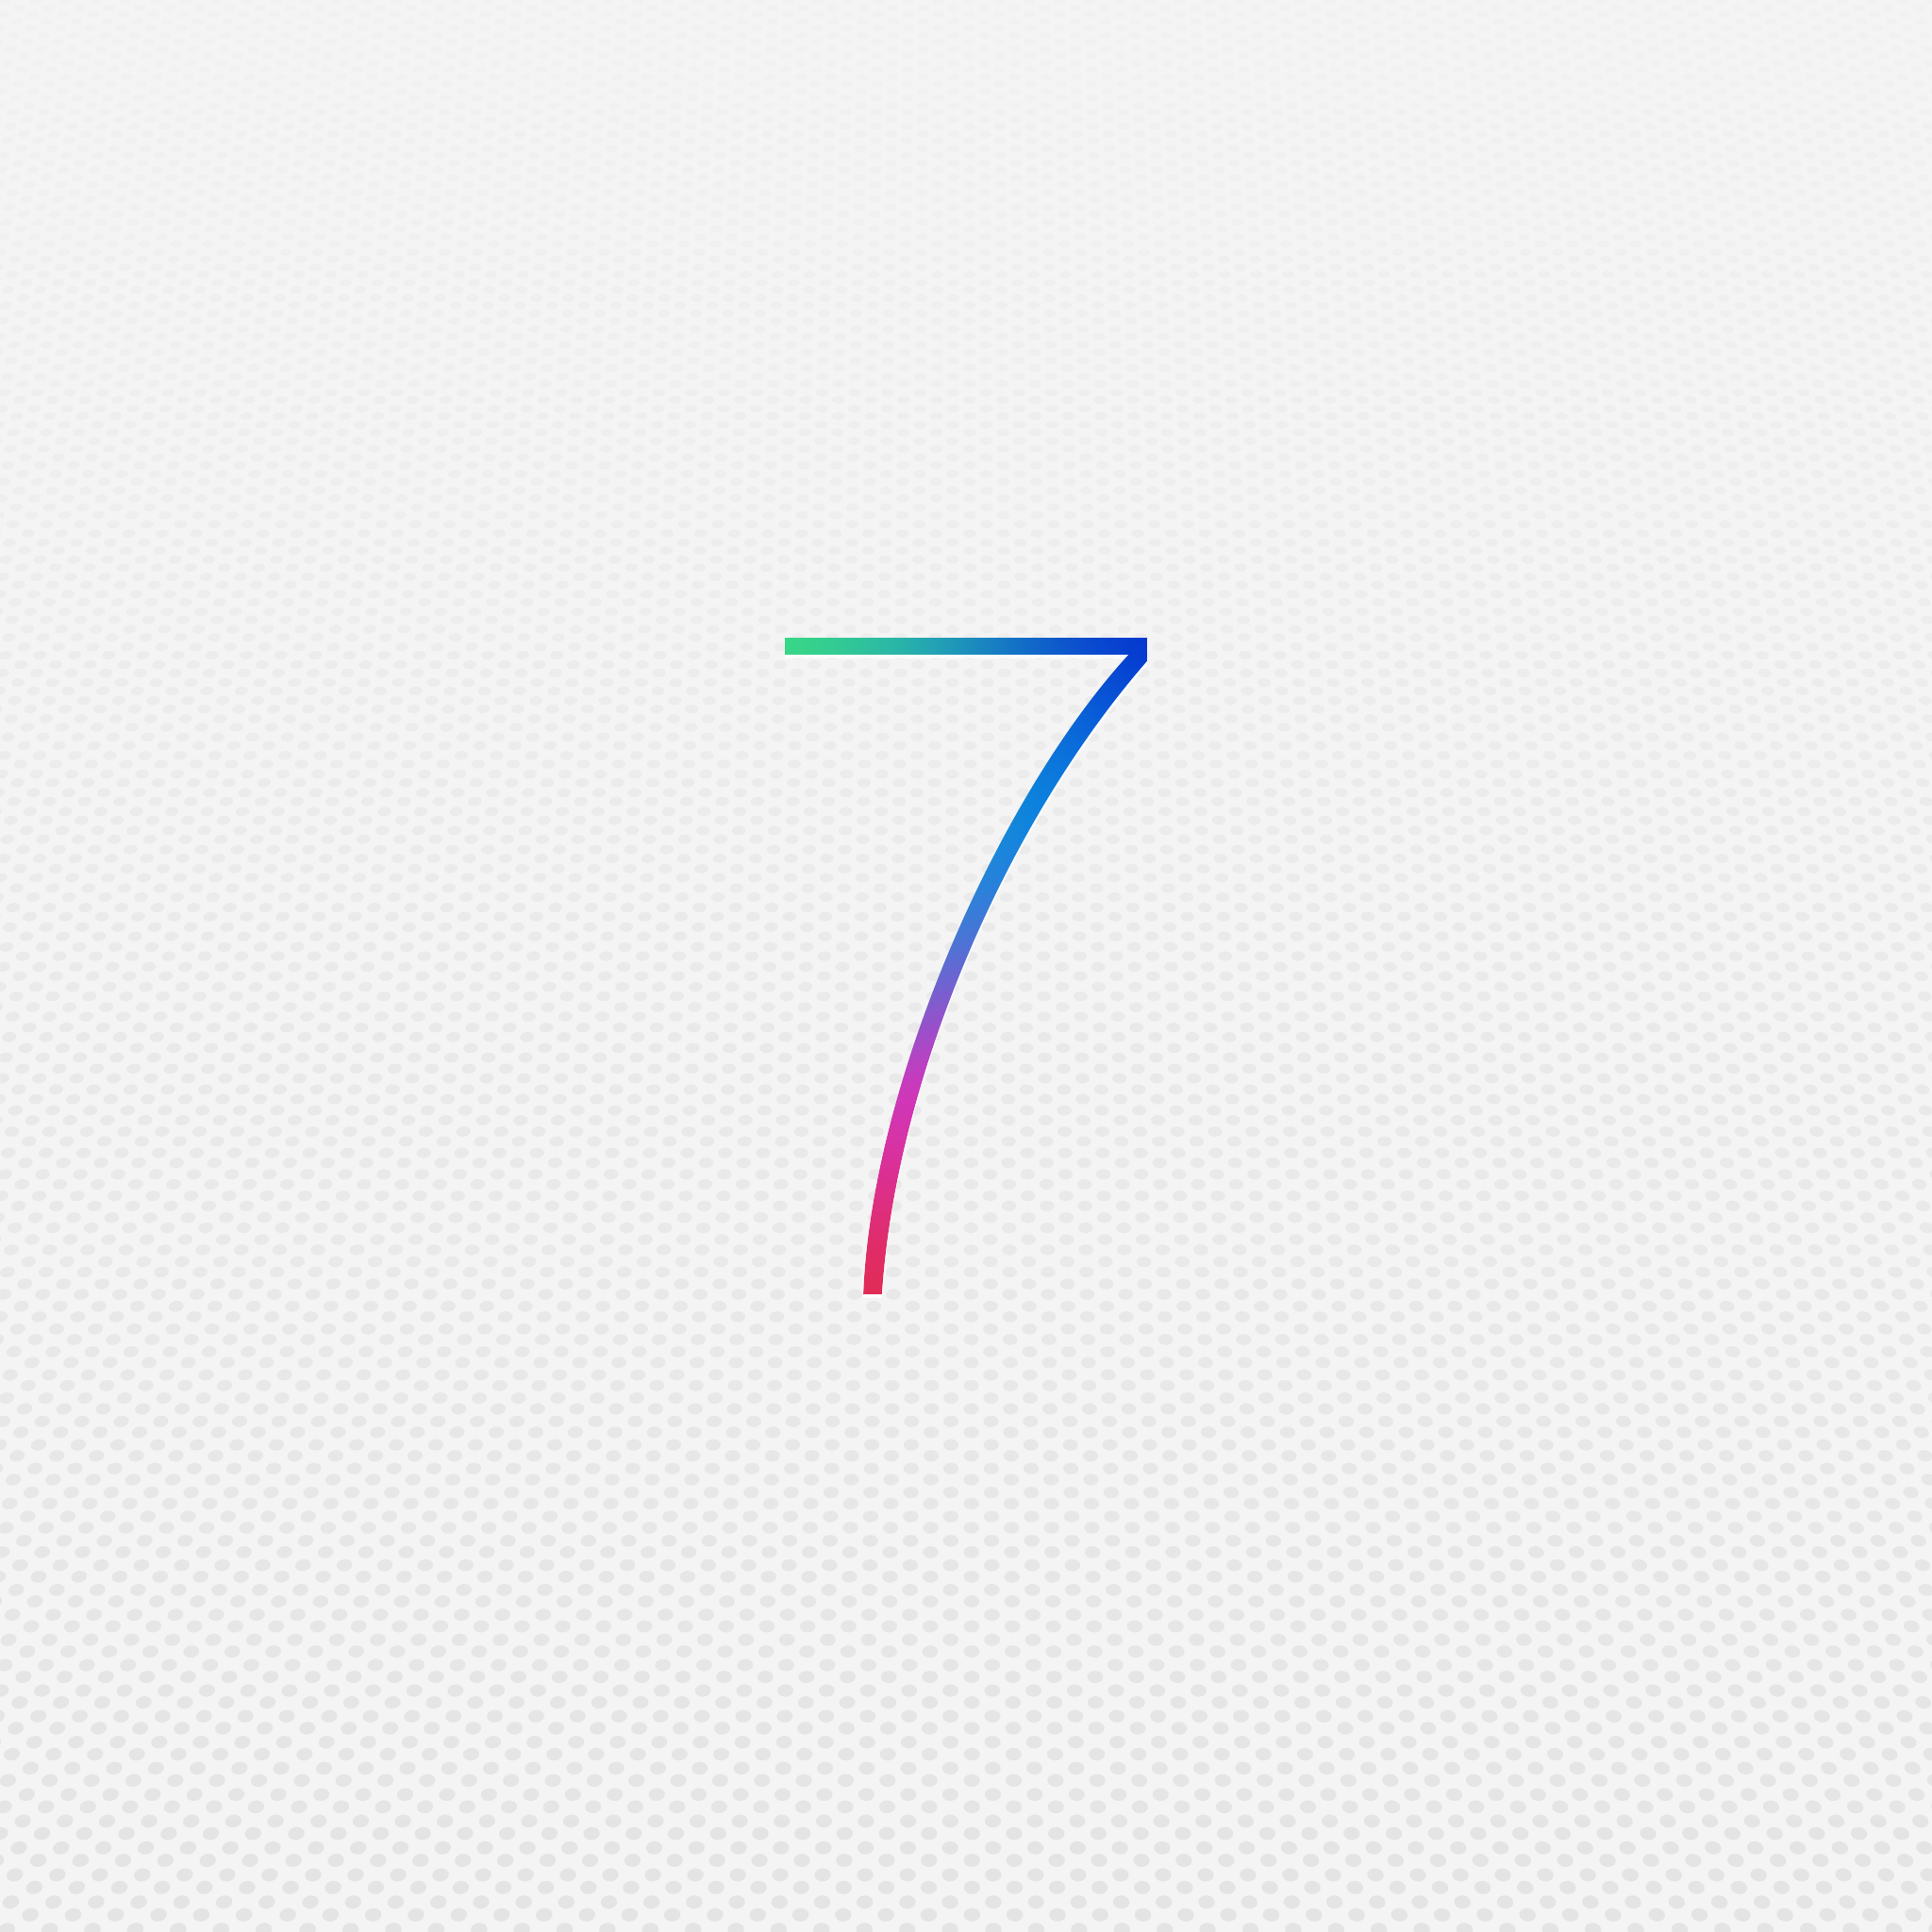 How to get more out of iOS 7